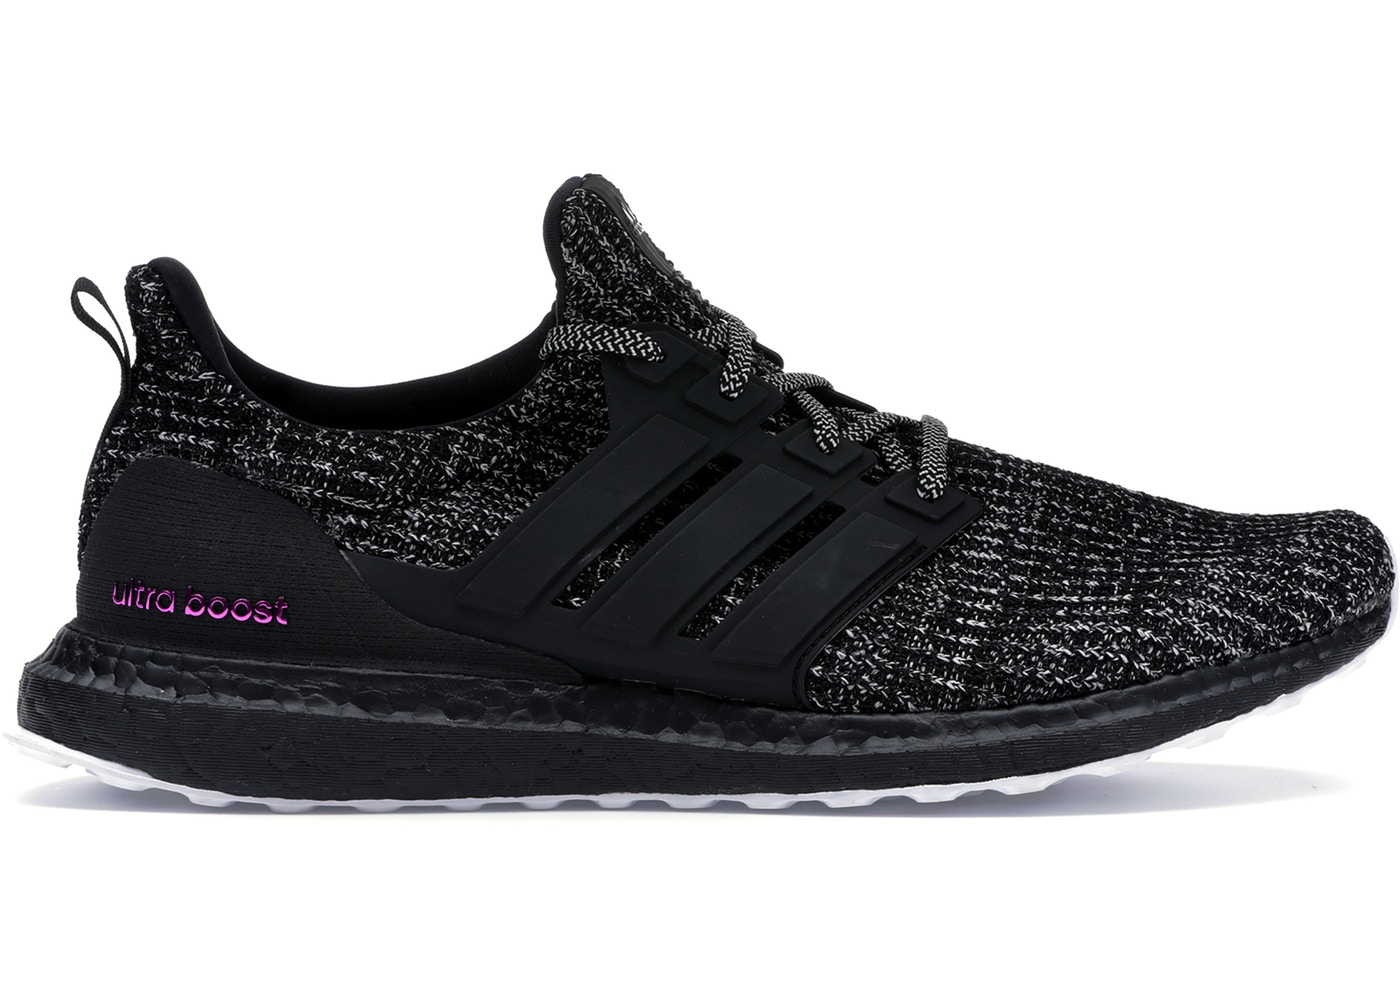 f26f8329cc199 On Sale  adidas Ultra Boost 4.0